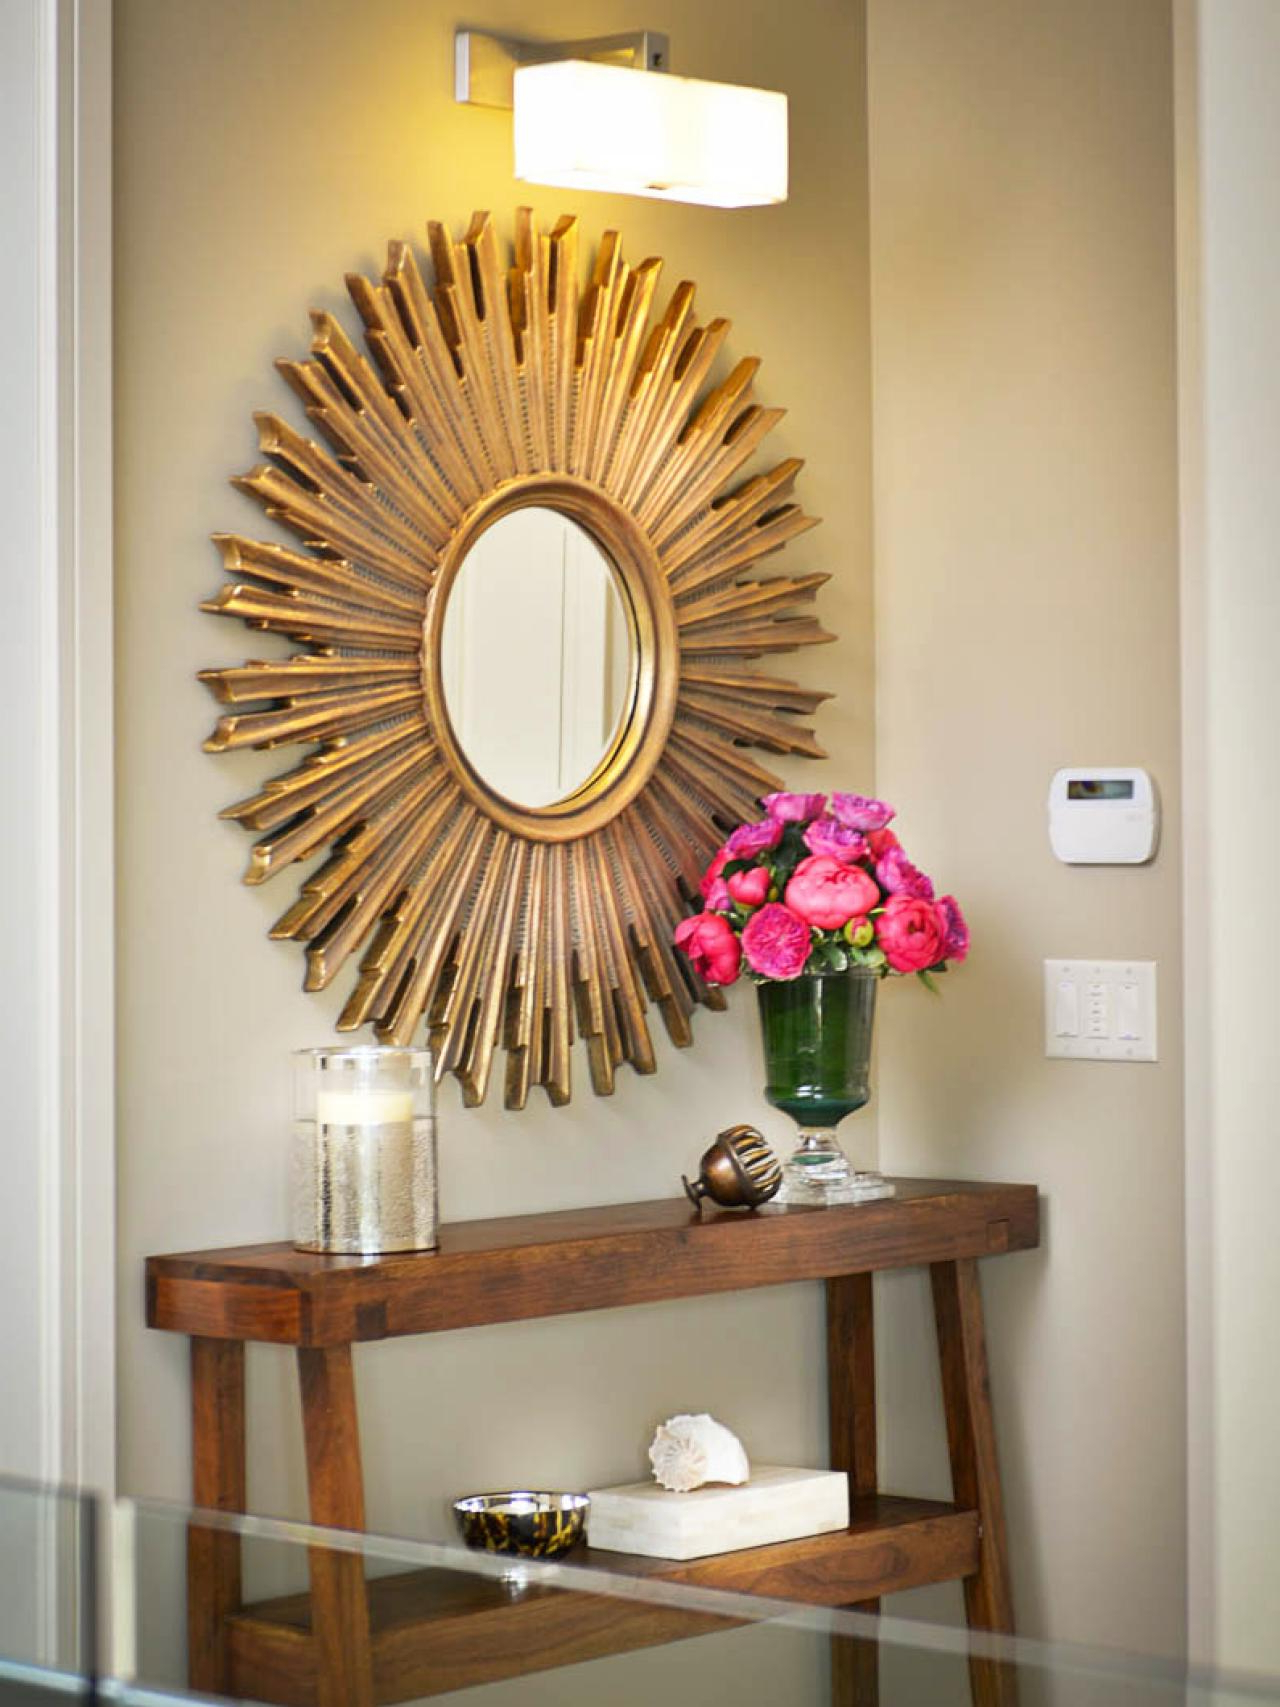 Inspirations: Beautiful Sunburst Mirrors For Unique Home Accessories In Preferred Large Sunburst Wall Mirrors (View 6 of 20)